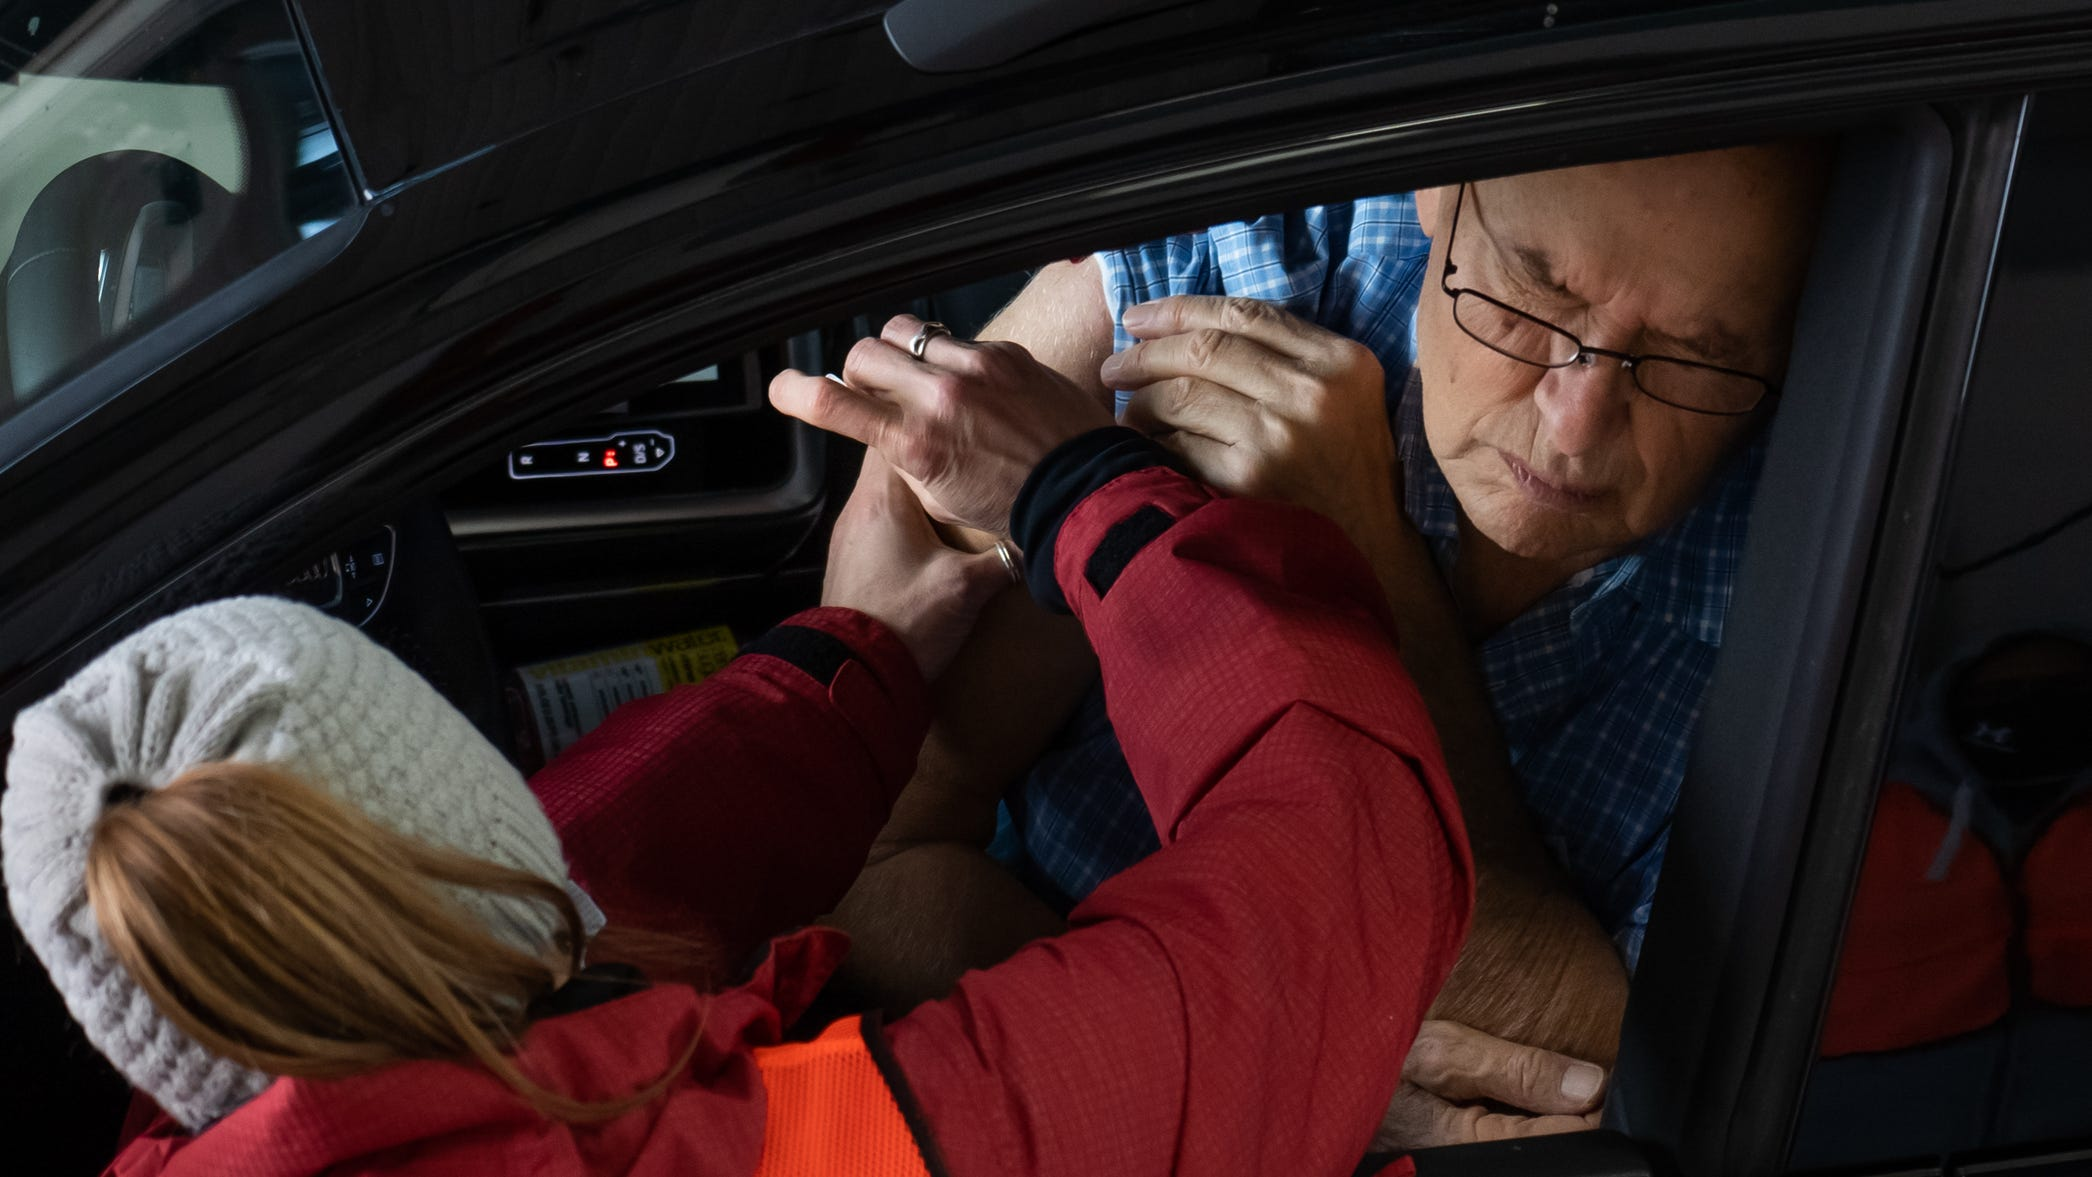 Frank Barbat of Waterford responds by being inoculated with the Pfizer COVID-19 vaccine by Oakland County Health Division RN Julie Traicoff during a drive-by vaccination at the Regional Fire Department of the Township of Waterford on Monday, January 11, 2021.